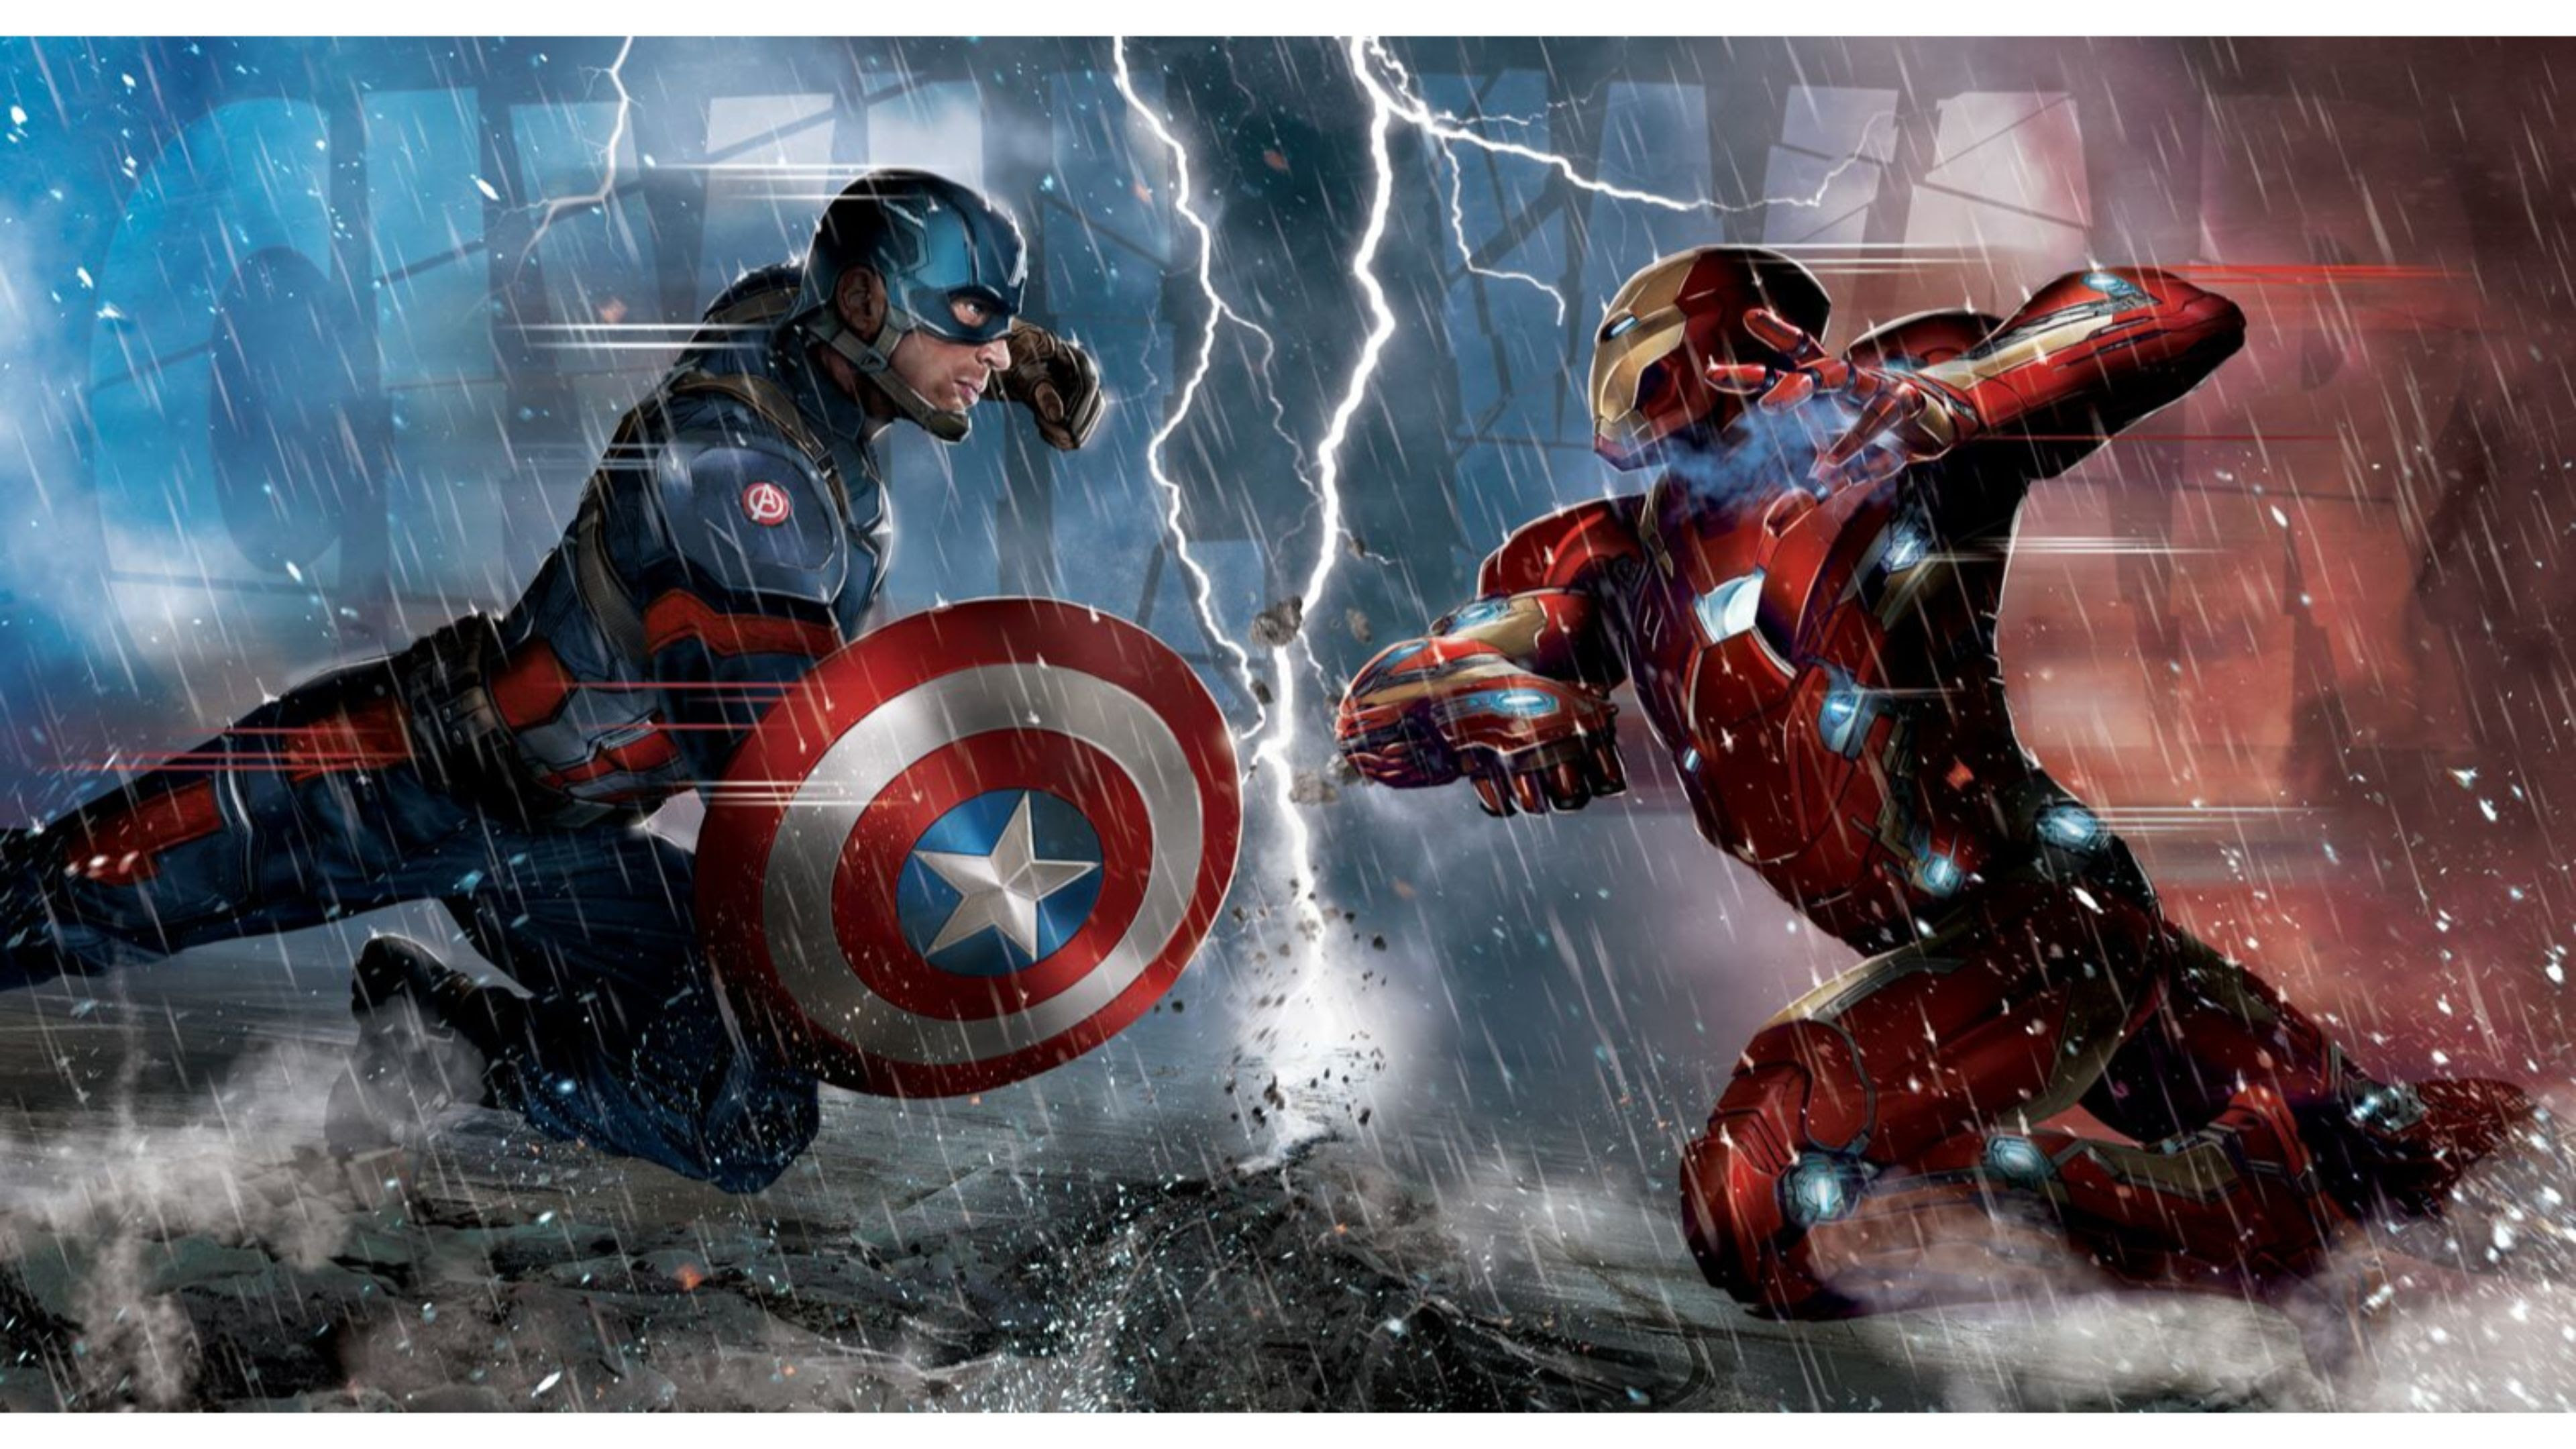 Download Iron Man Civil War Wallpaper Hd Cikimmcom